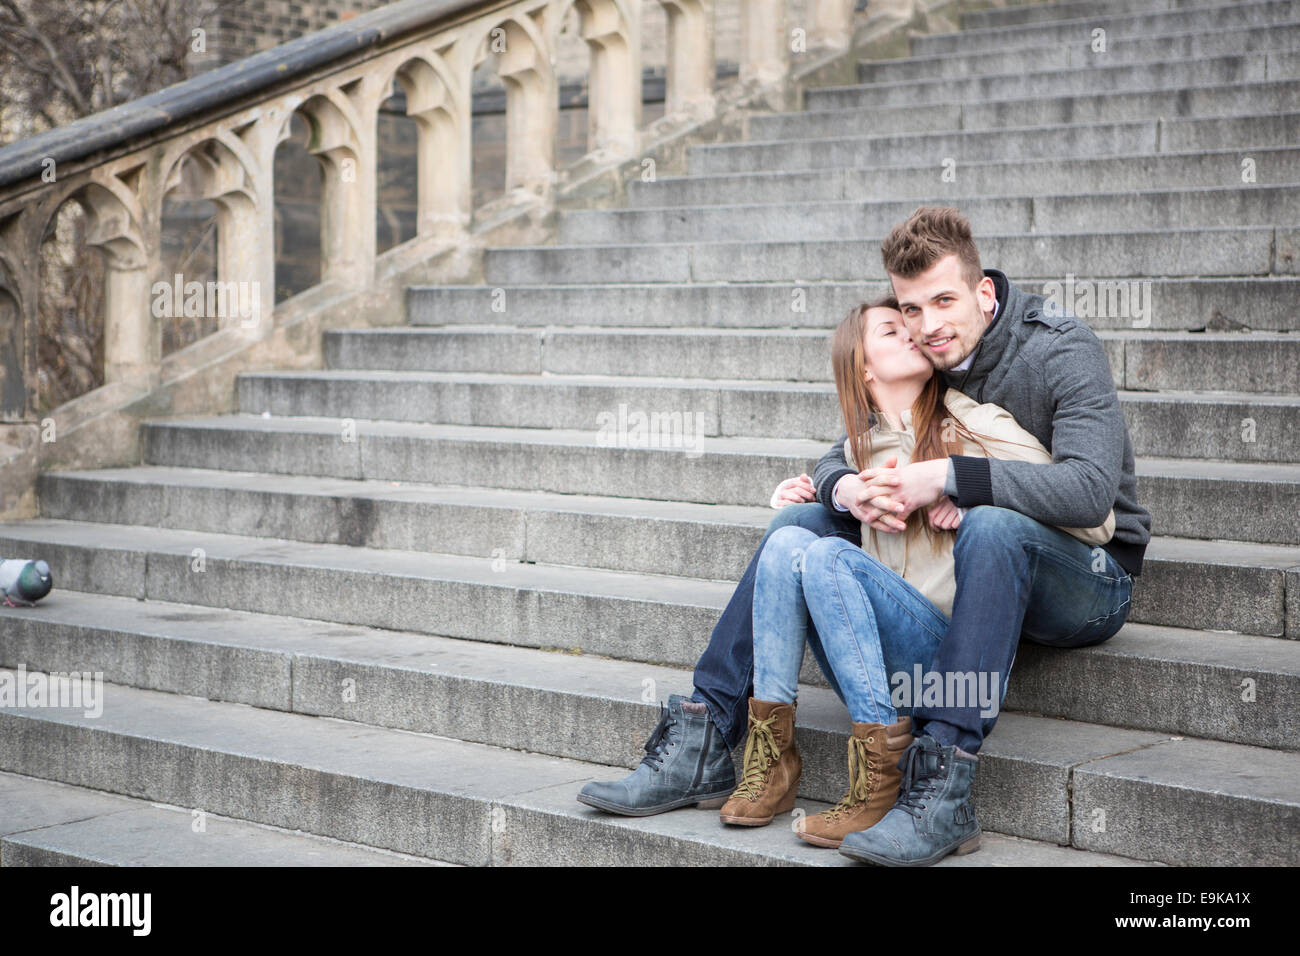 Full length of loving woman kissing man while sitting on steps outdoors - Stock Image